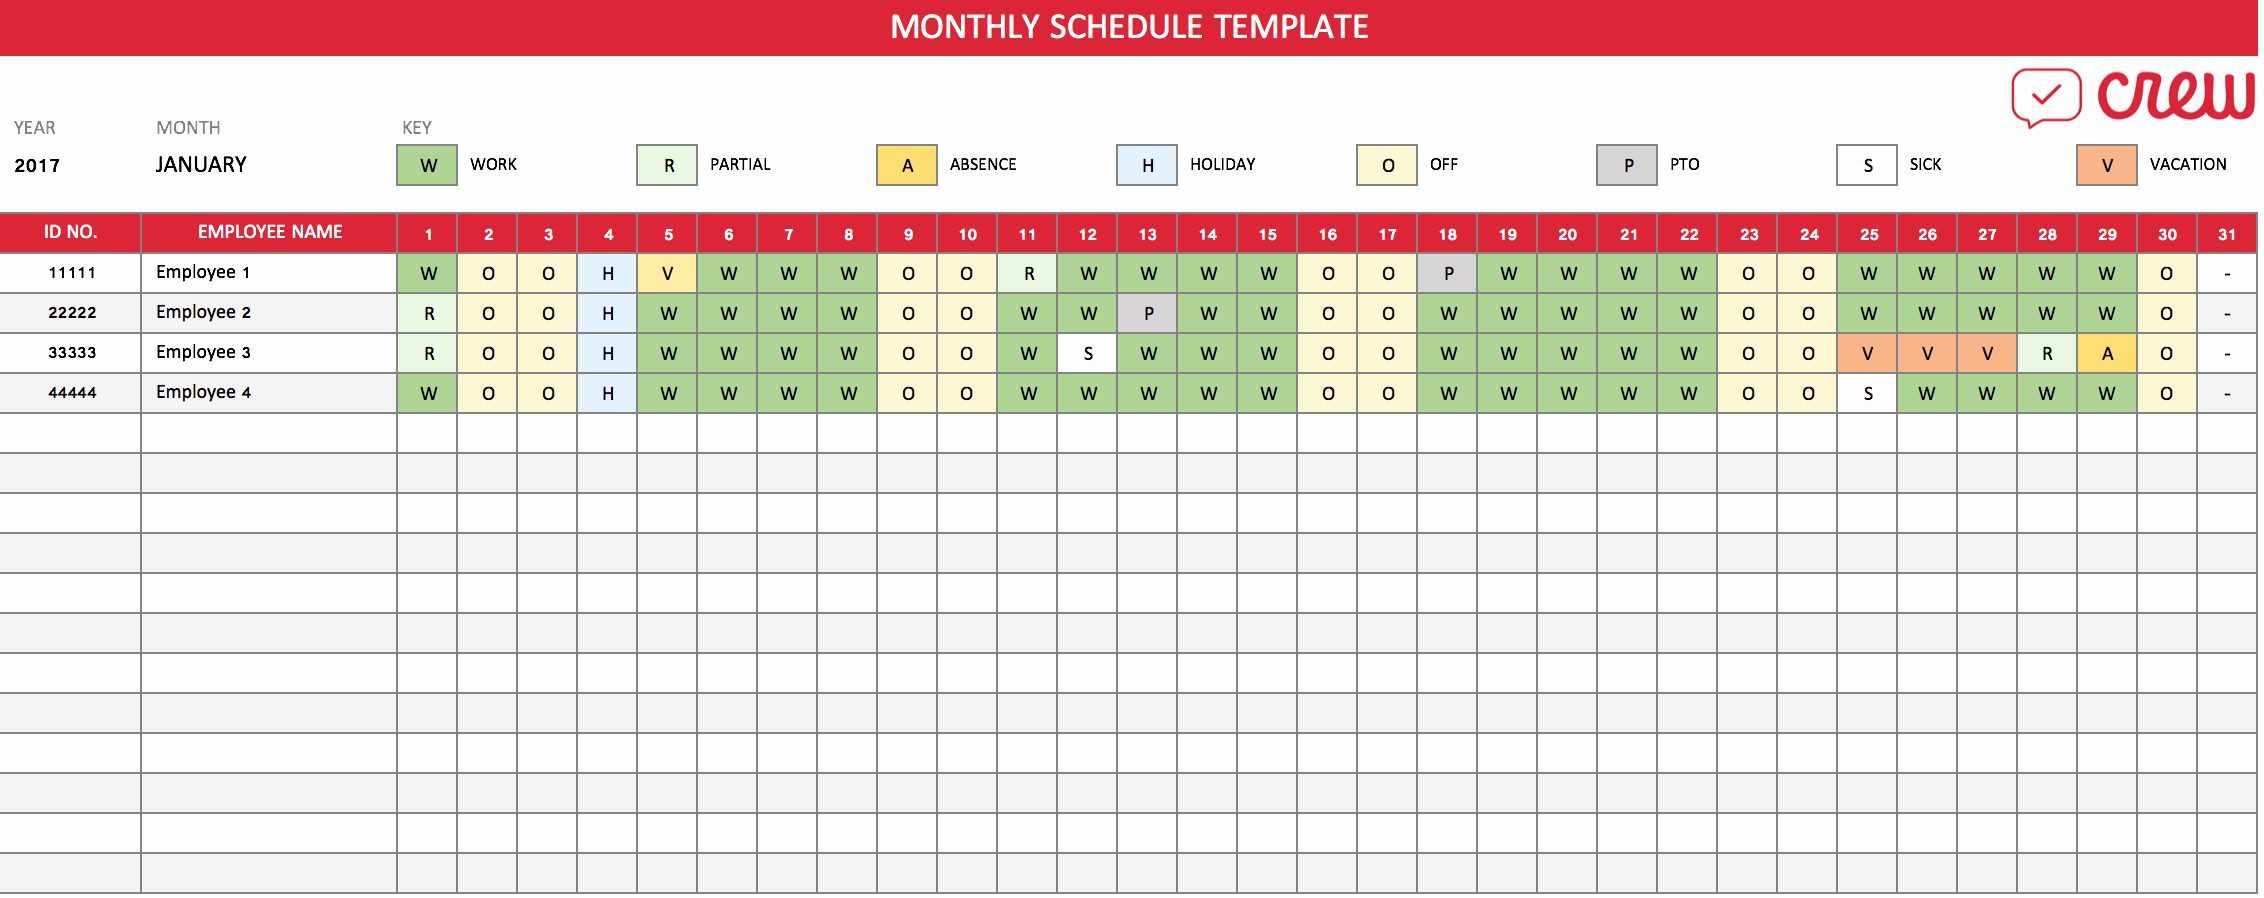 Monthly Schedule Template Excel New Free Monthly Work Schedule Template Crew